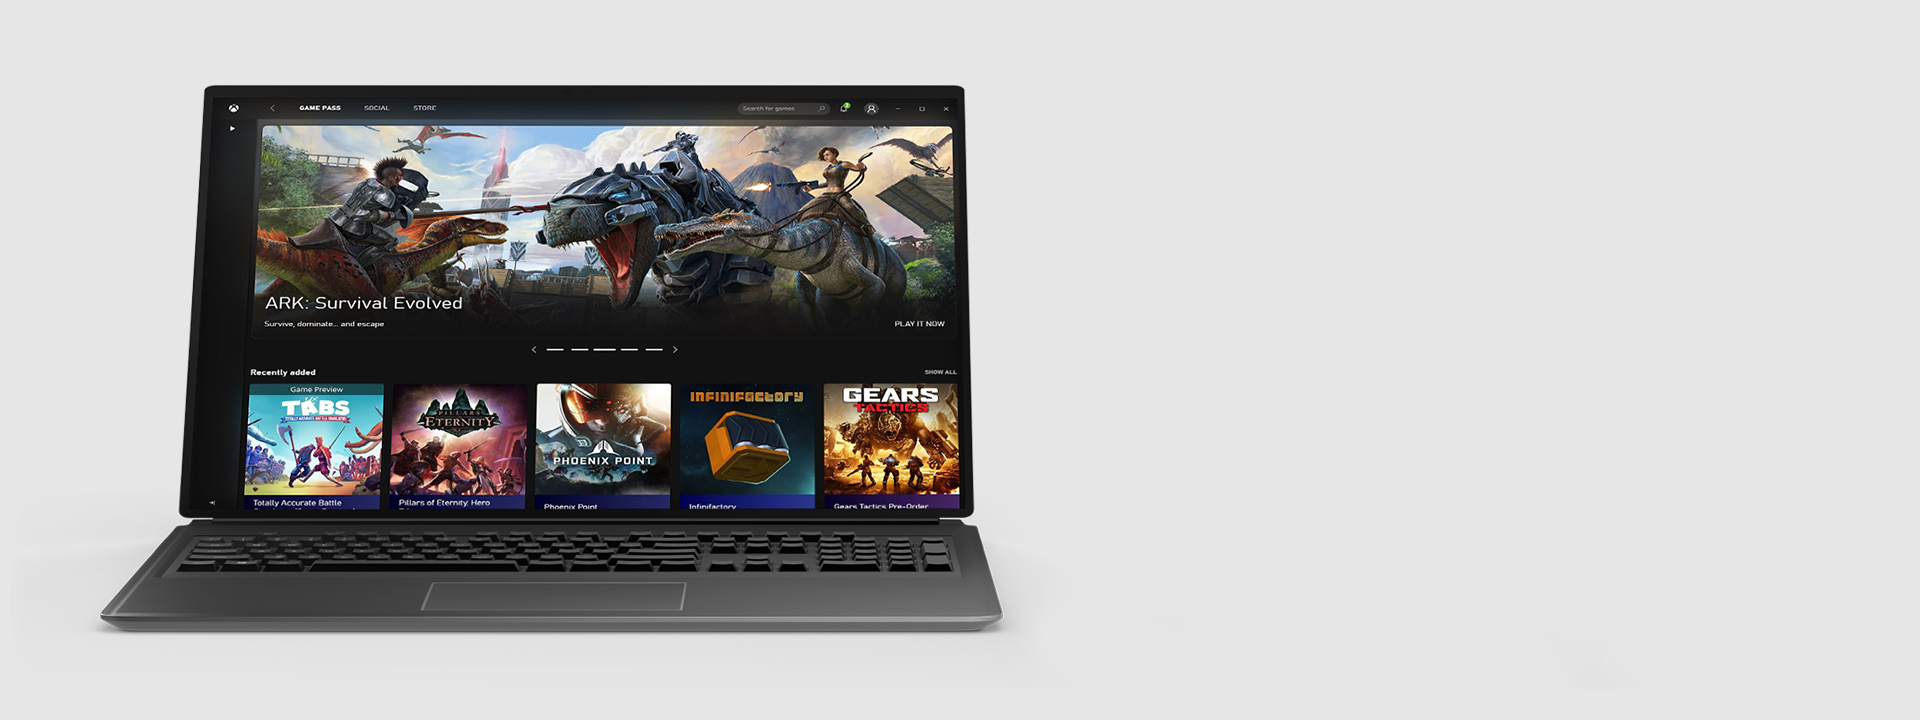 Xbox Game Pass PC app home screen on a laptop screen